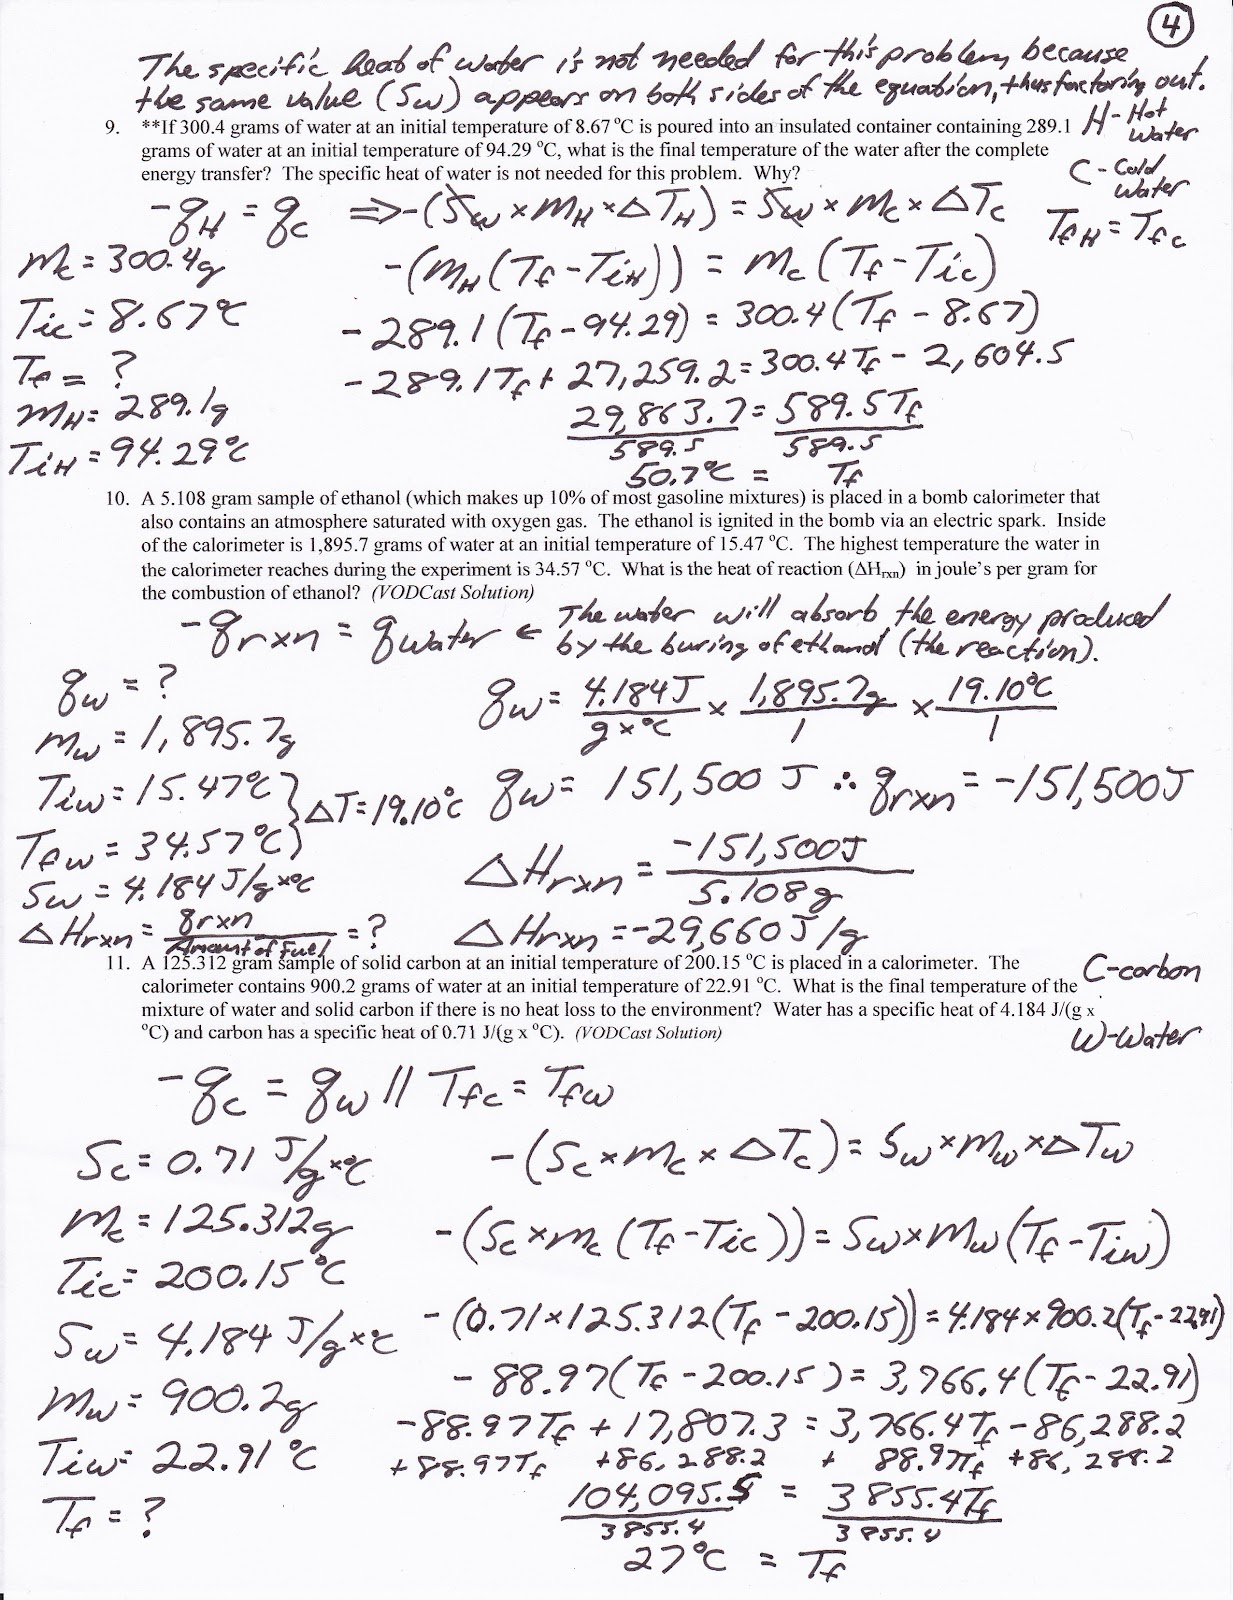 Printables Calorimetry Worksheet liver and onions are super v calorimetry worksheet solutions on 8 the change in temperature for aluminum is reported as 375oc it should be that correction made below